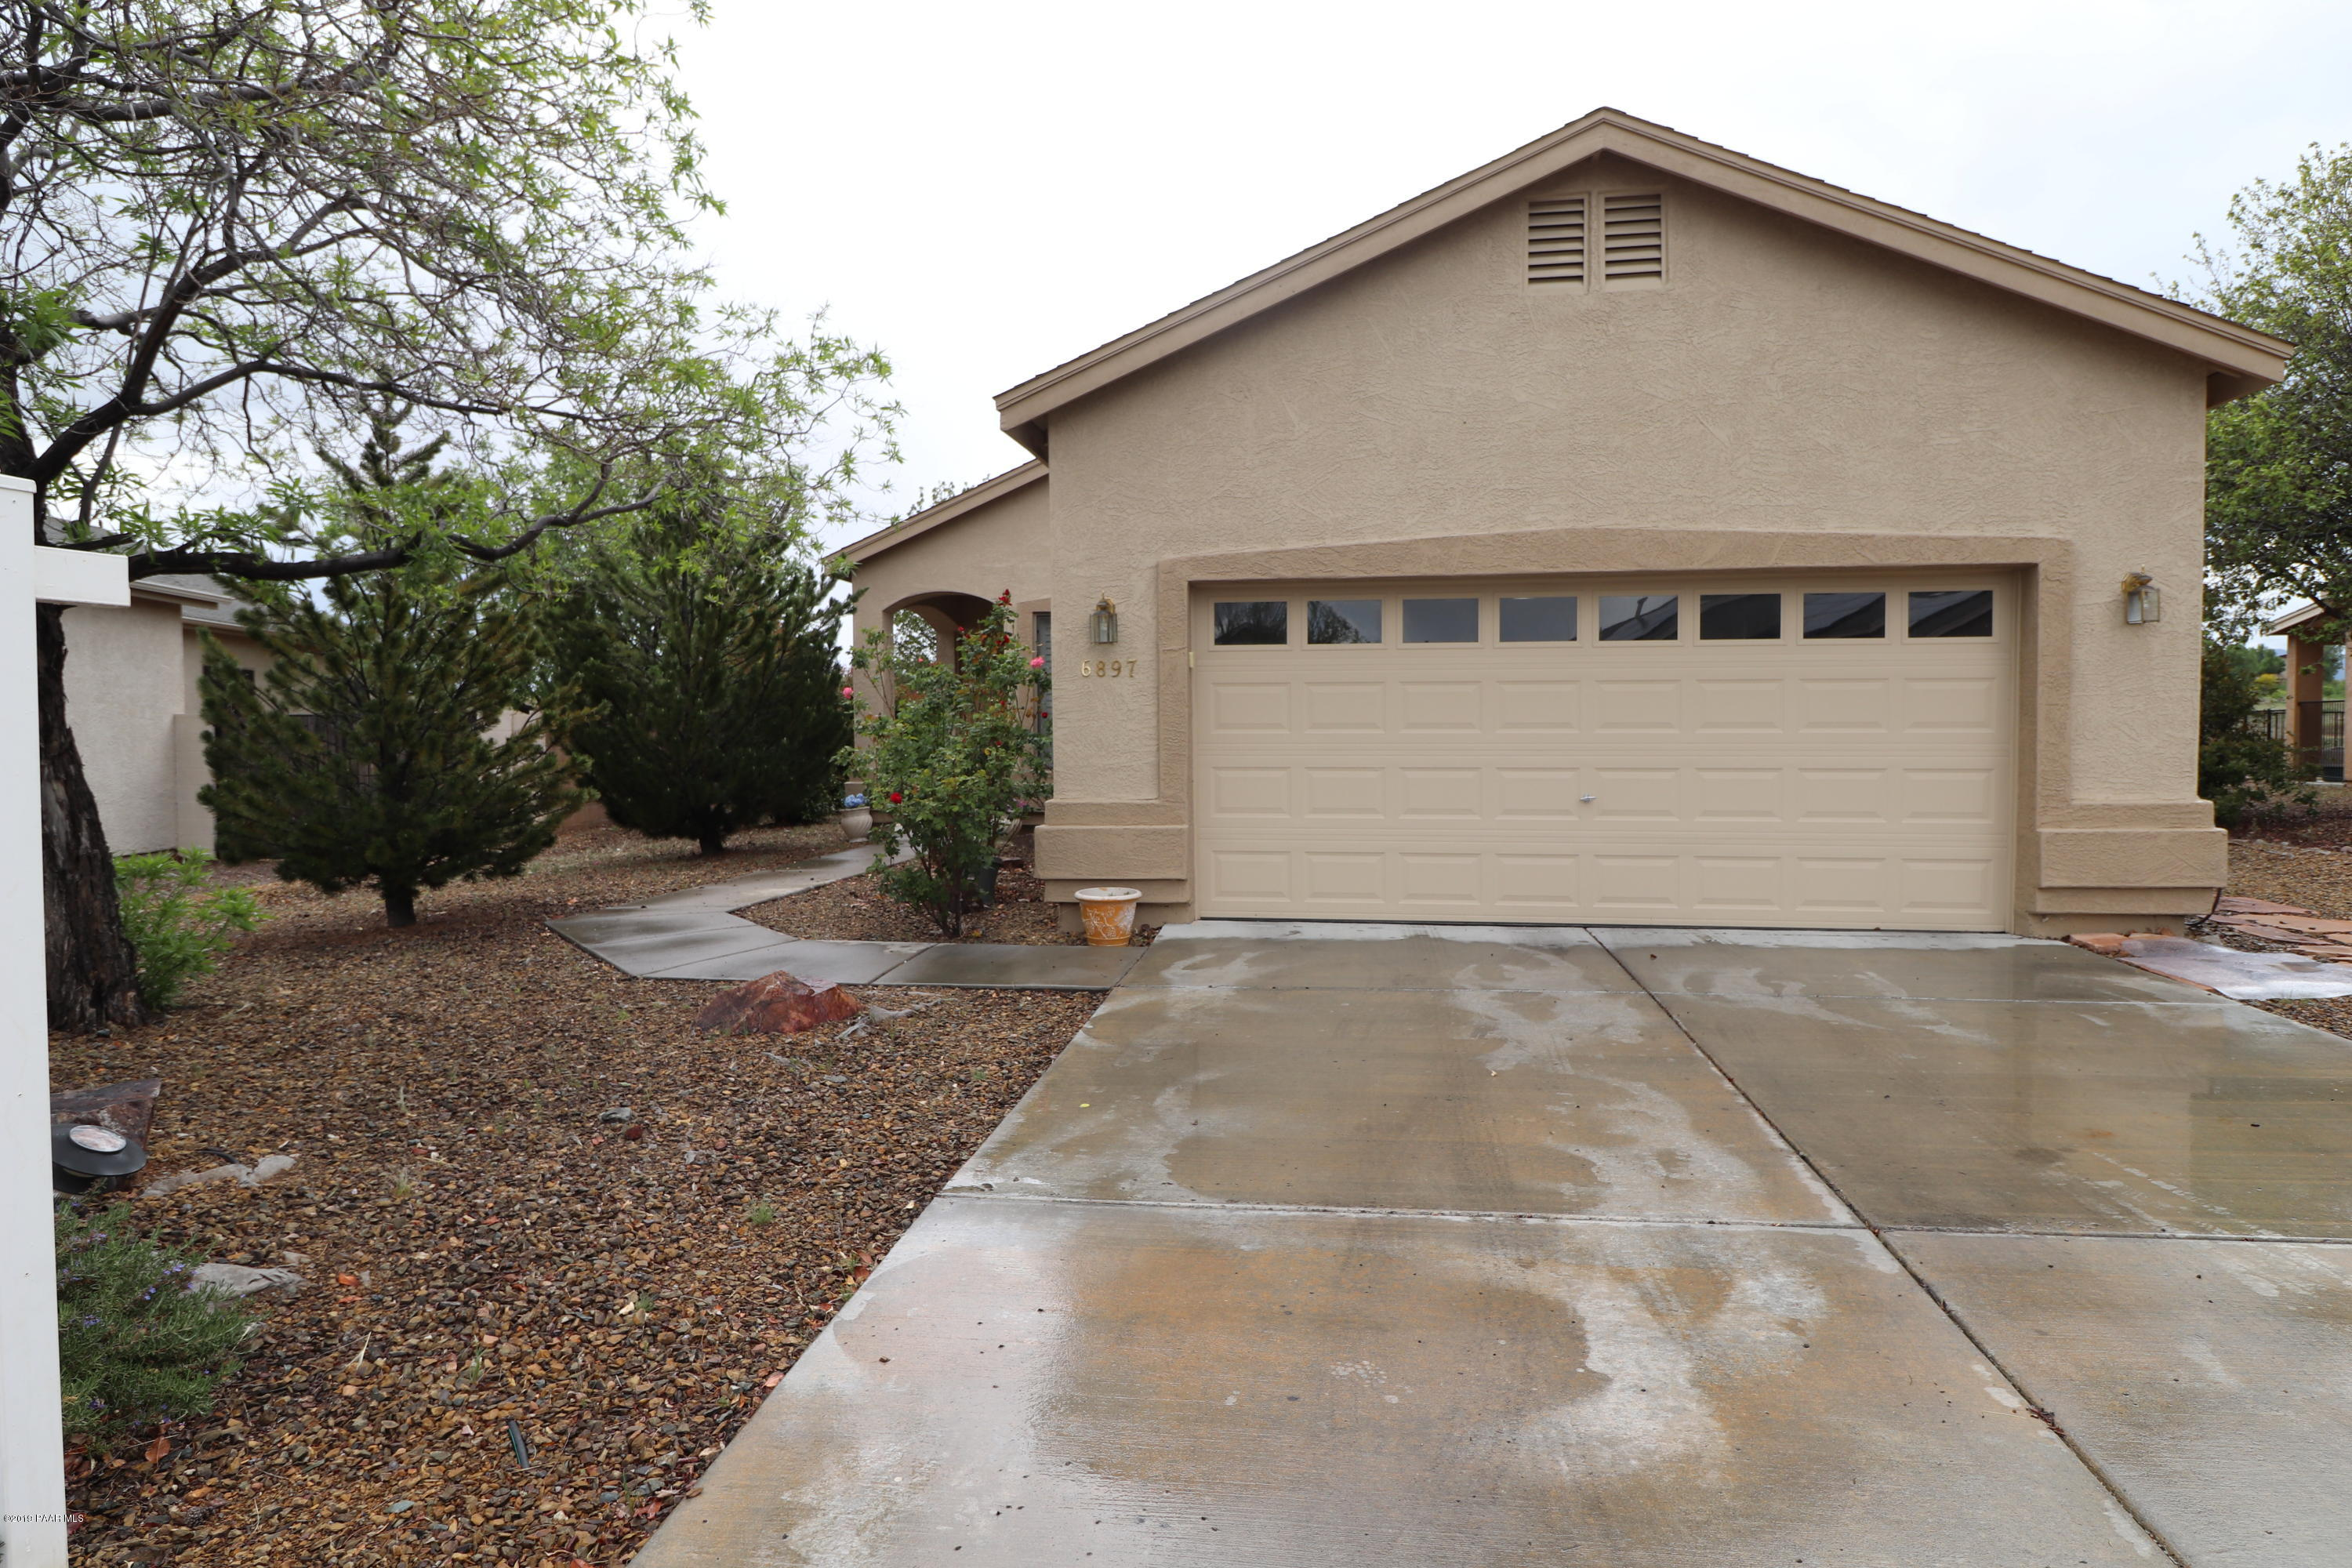 Photo of 6897 Voltaire, Prescott Valley, AZ 86314